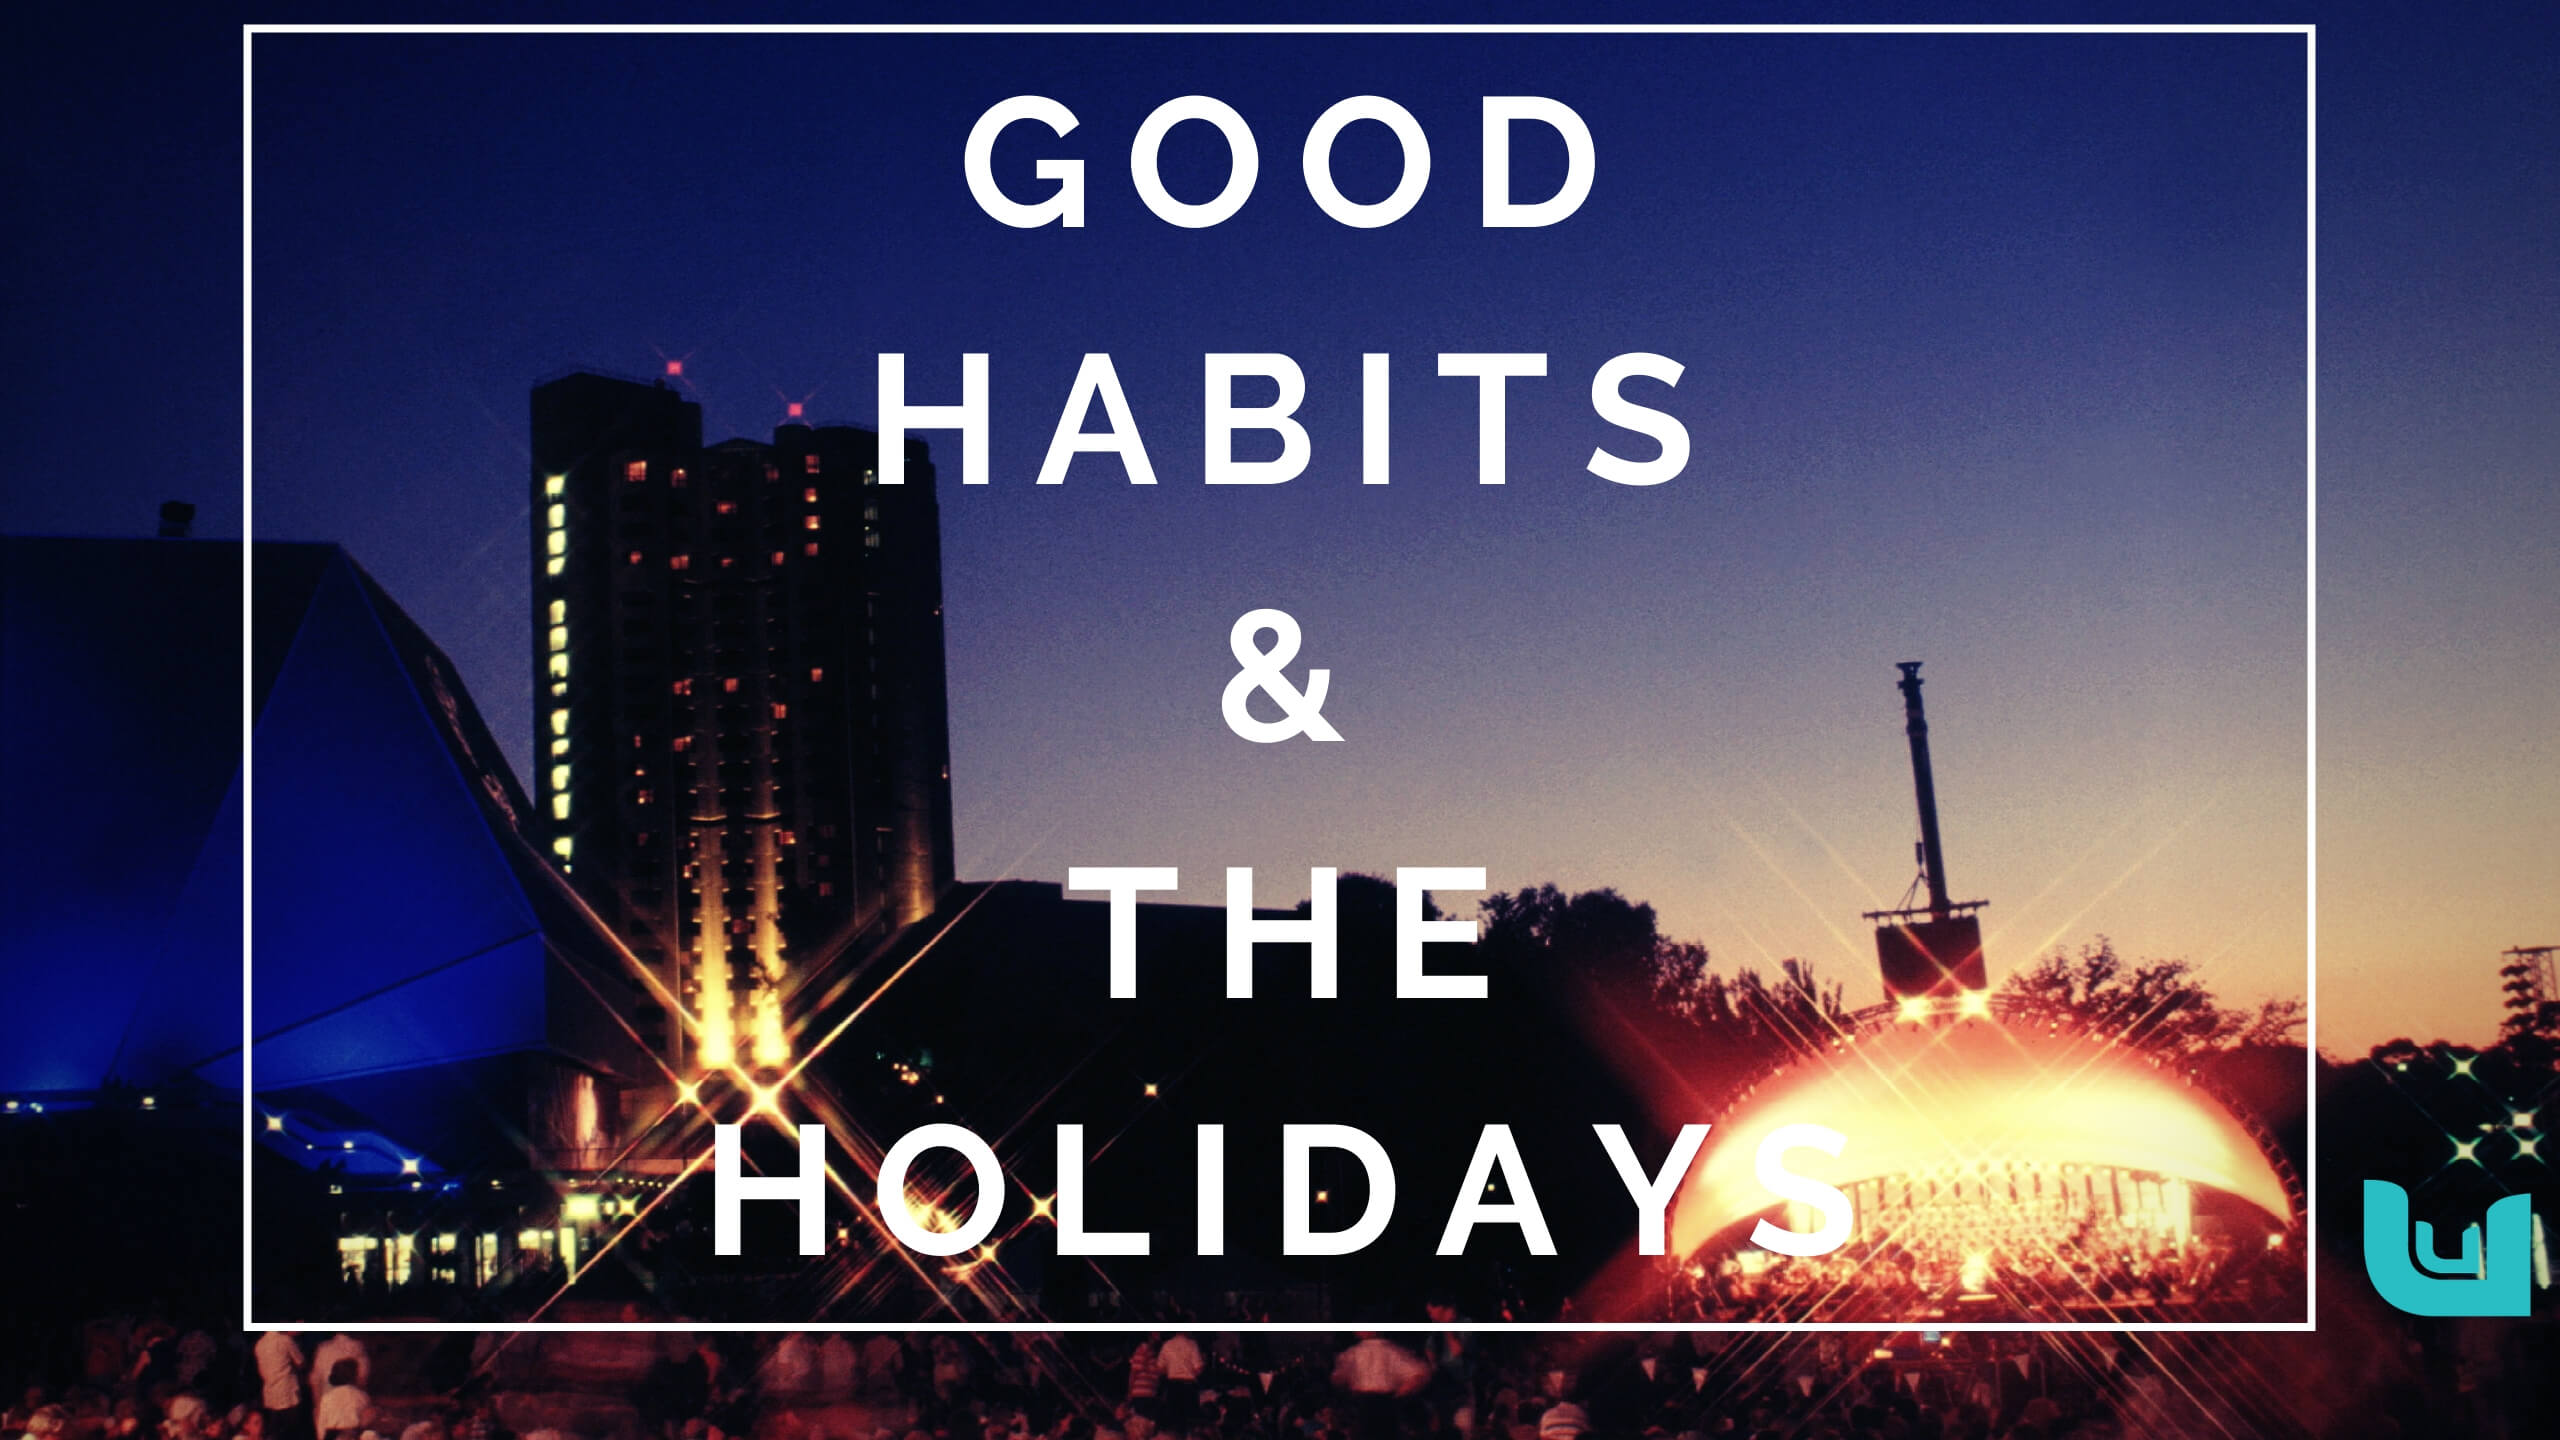 Good Habits During the Holidays